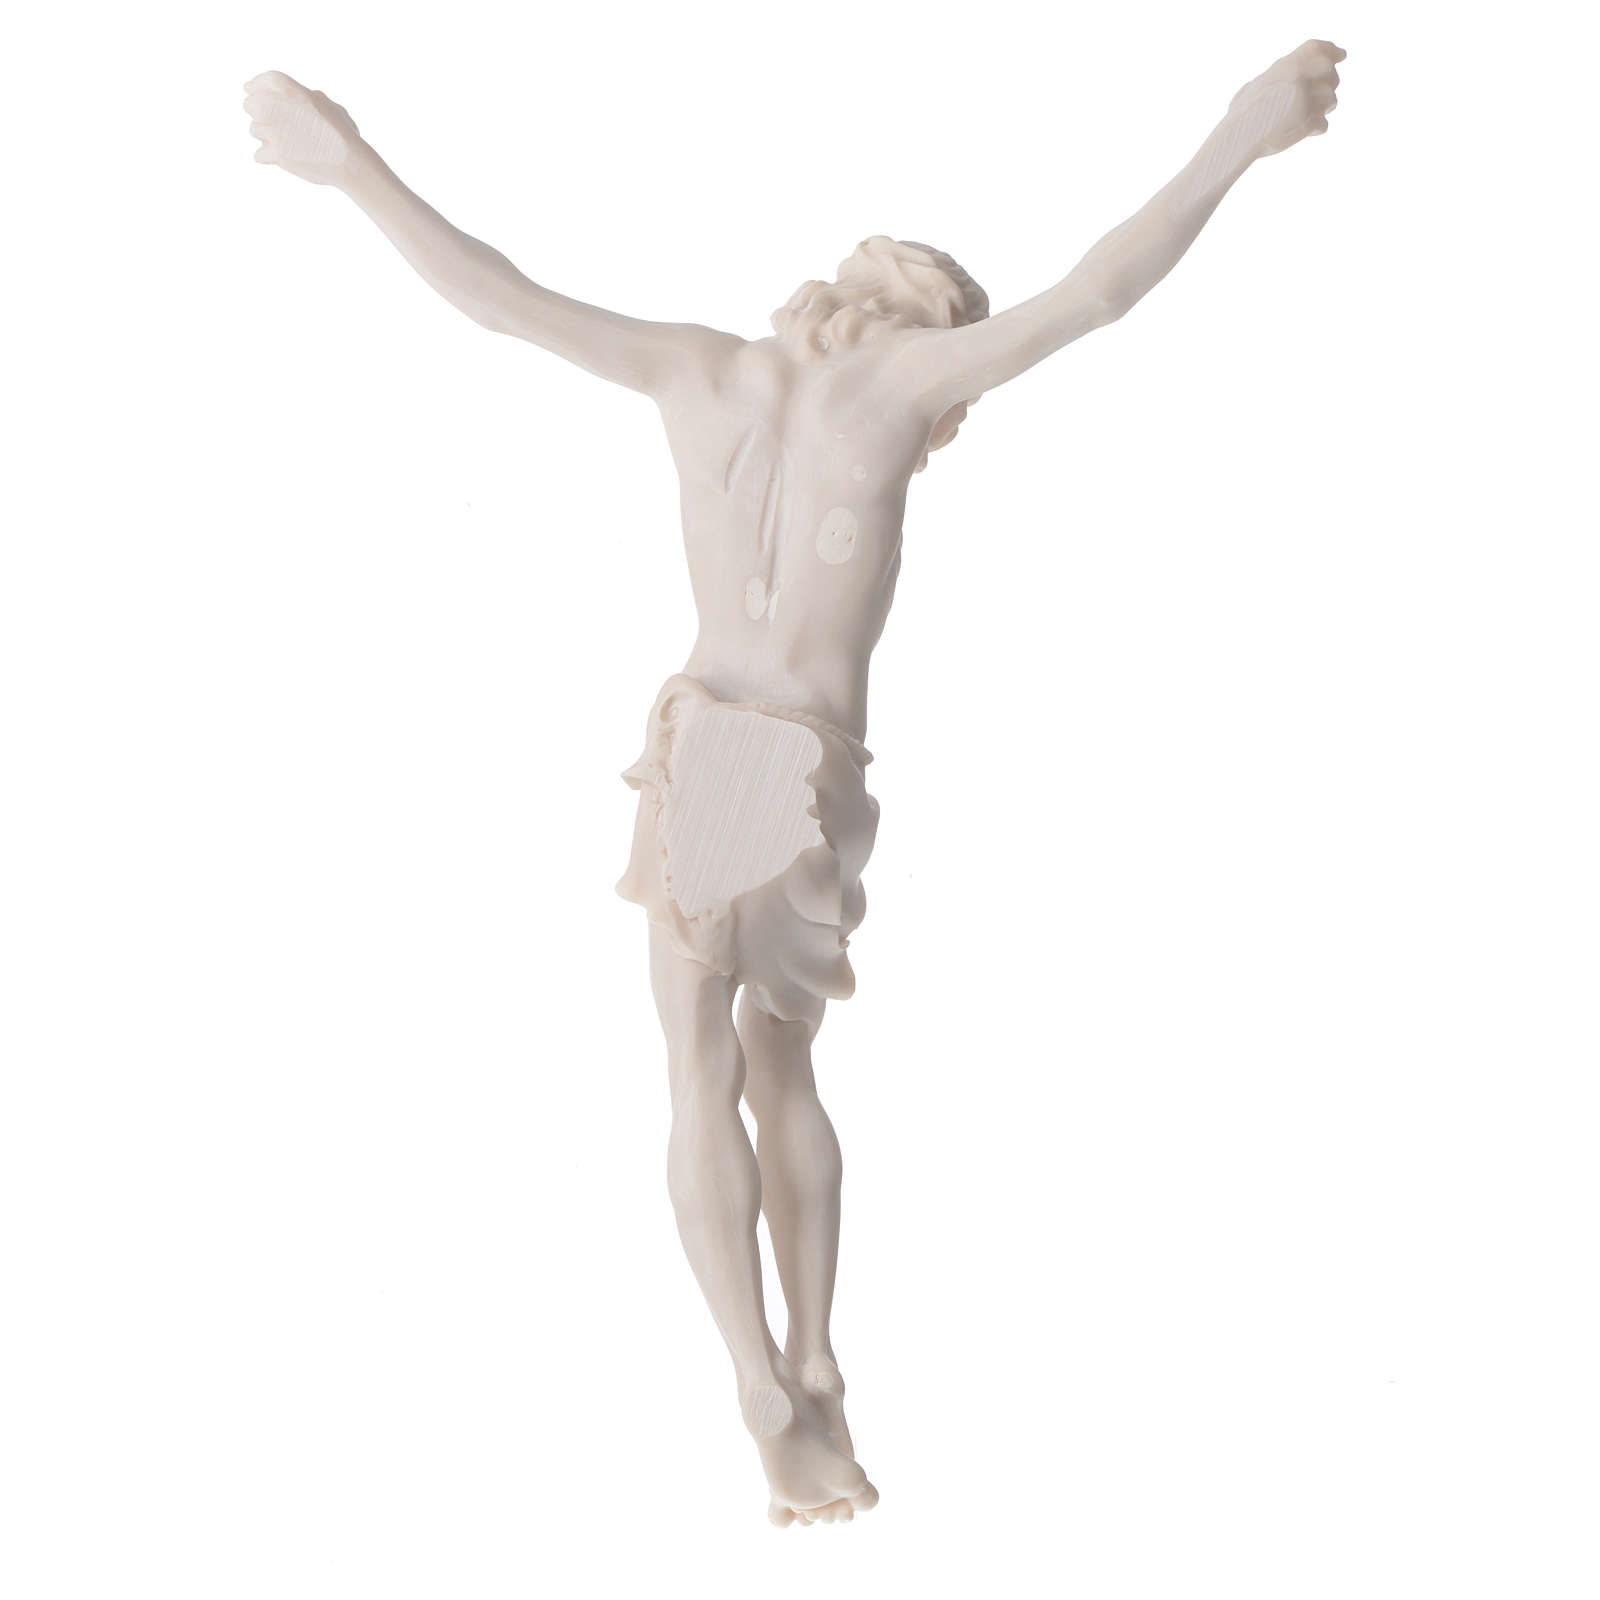 Christ's body 37 cm in marble dust finished in neutral white 4